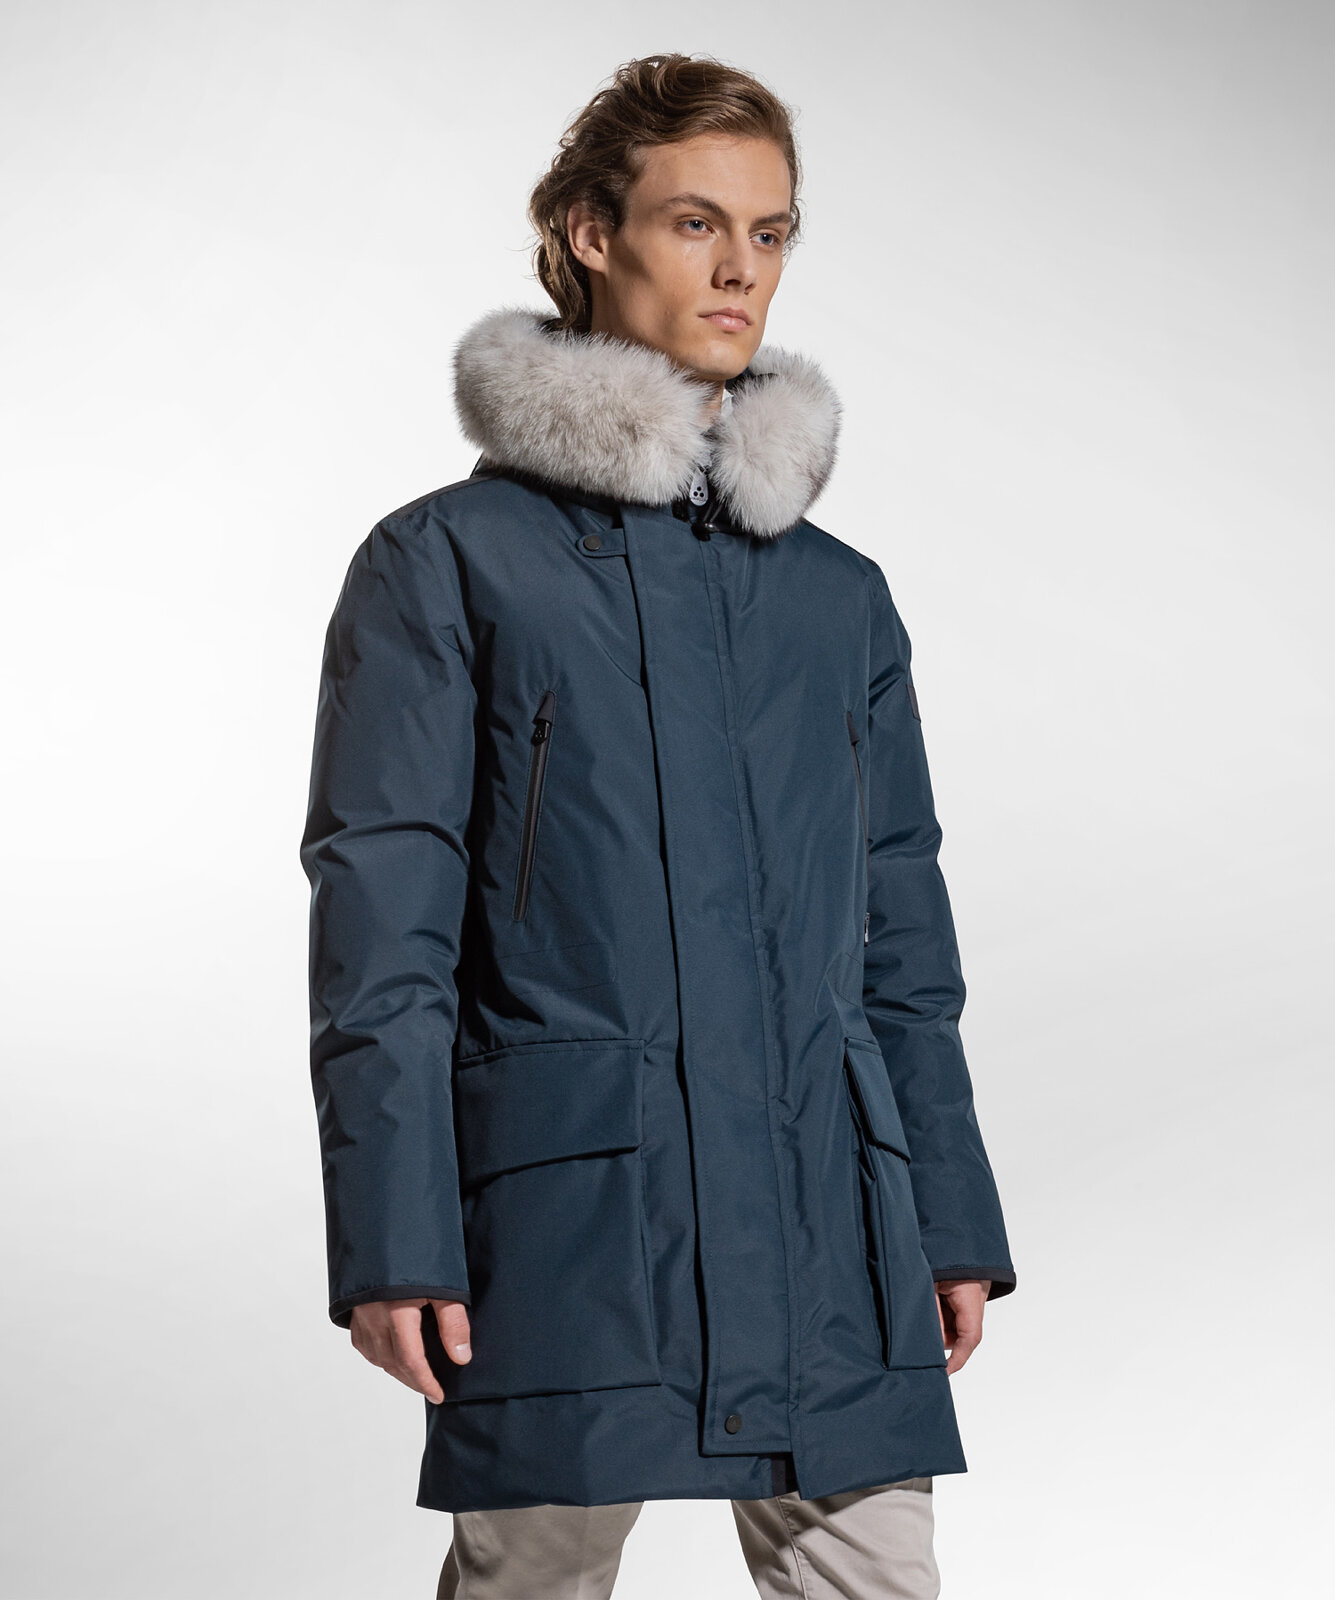 Parka In Technical Fabric - Peuterey